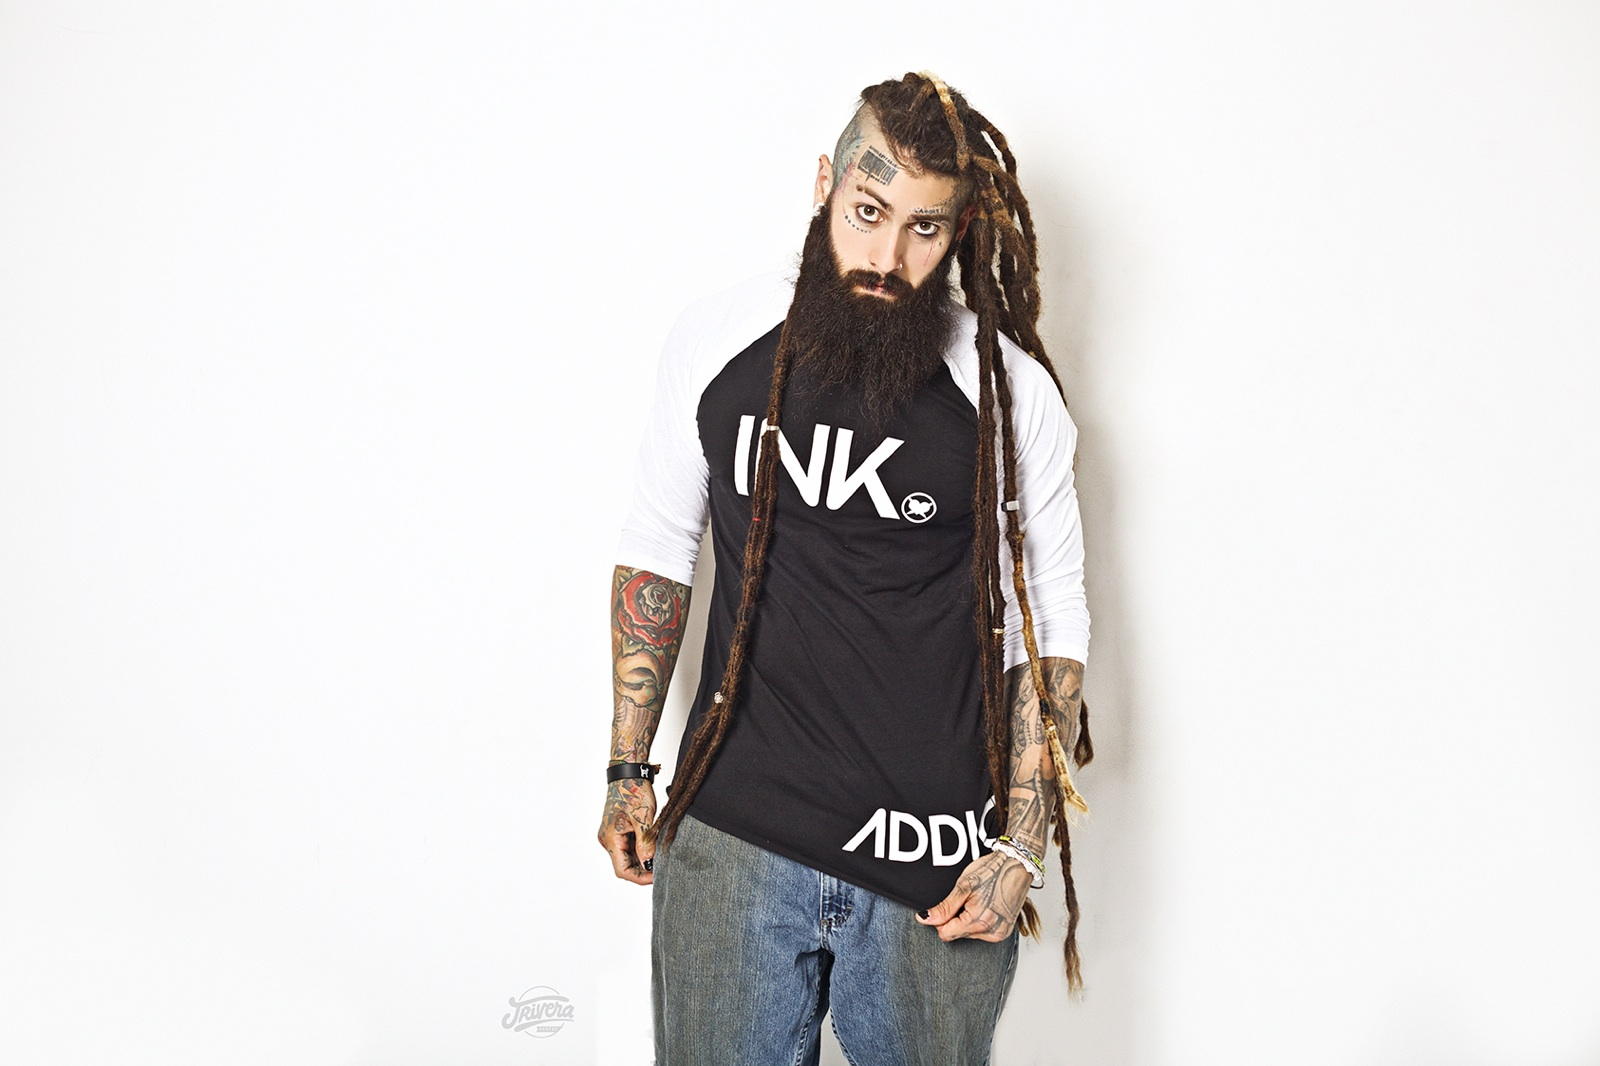 ink addict apparel